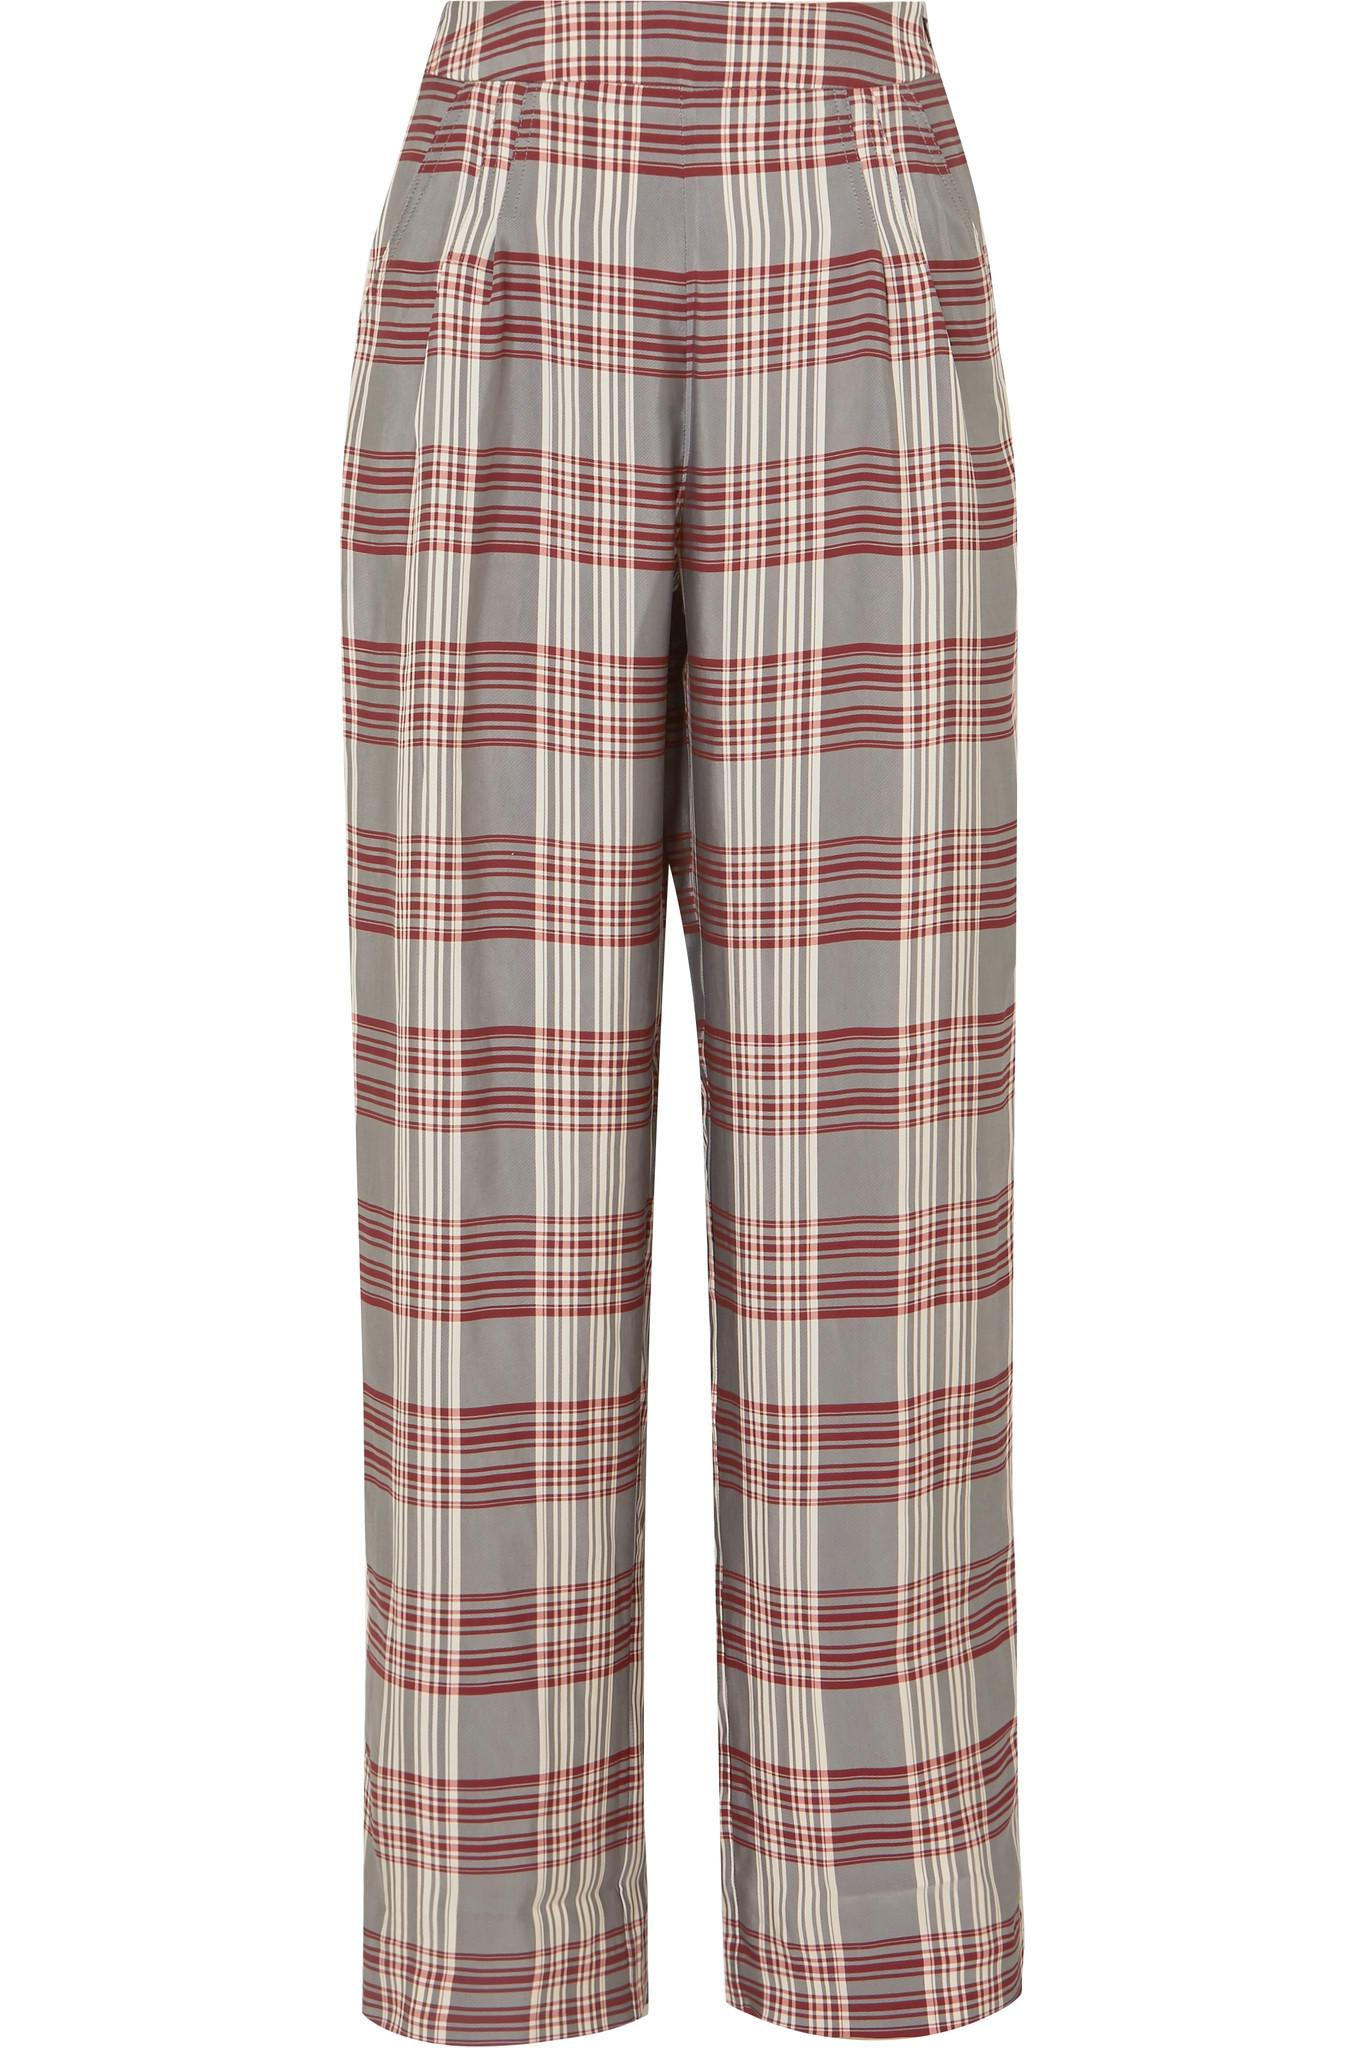 Molly Checked Crepe Trousers - Red Markus Lupfer qg3ARdzWD7